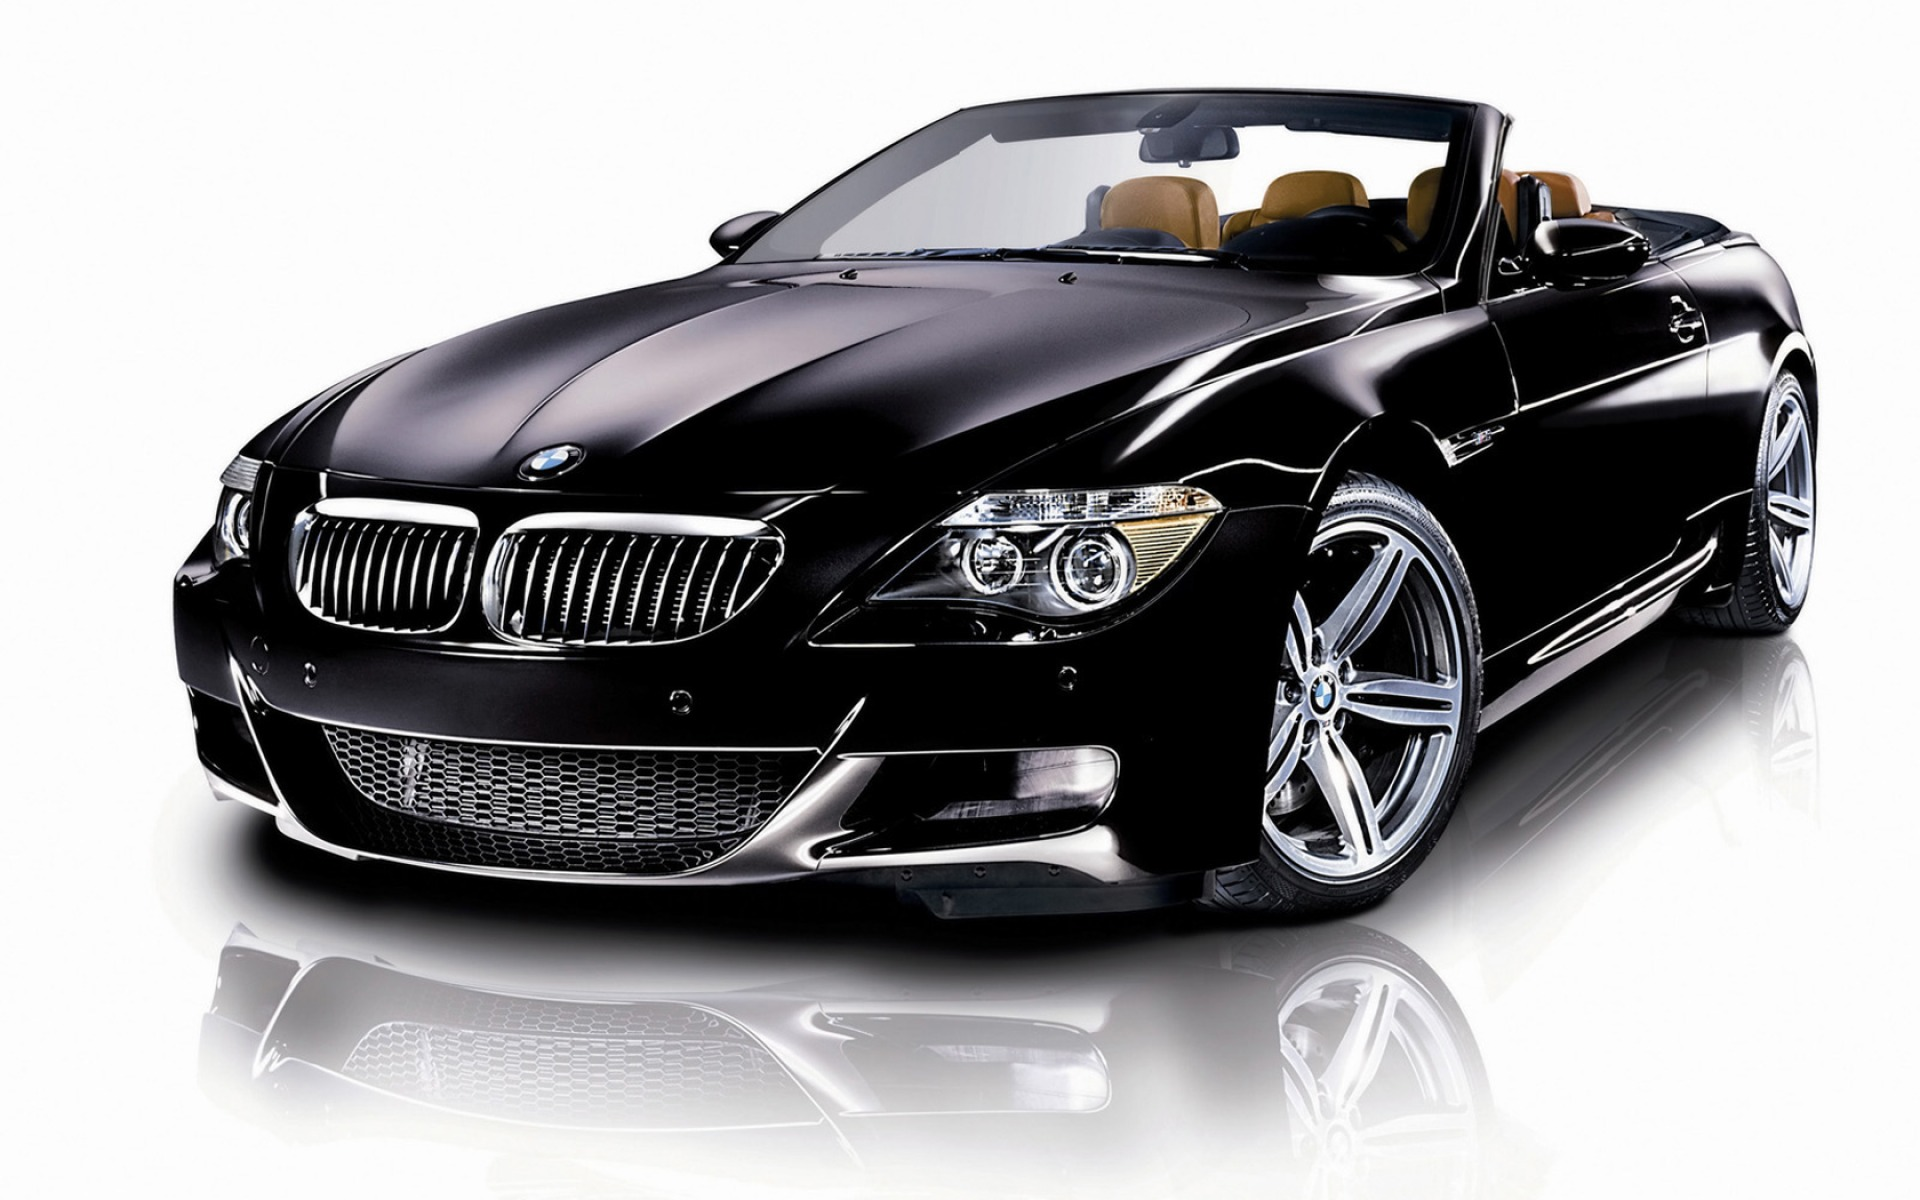 Ultrablogus  Sweet Bmw Car Wallpaper Wallpapers For Free Download About   With Lovable Bmw M Convertible Wallpaper Bmw Cars With Appealing Bmw Interior Detailing Also Isuzu Axiom Interior In Addition  Gmc Denali Interior And  Impala Interior As Well As  Toyota Echo Interior Additionally Mercedes Interior Accessories From Allfreedownloadcom With Ultrablogus  Lovable Bmw Car Wallpaper Wallpapers For Free Download About   With Appealing Bmw M Convertible Wallpaper Bmw Cars And Sweet Bmw Interior Detailing Also Isuzu Axiom Interior In Addition  Gmc Denali Interior From Allfreedownloadcom